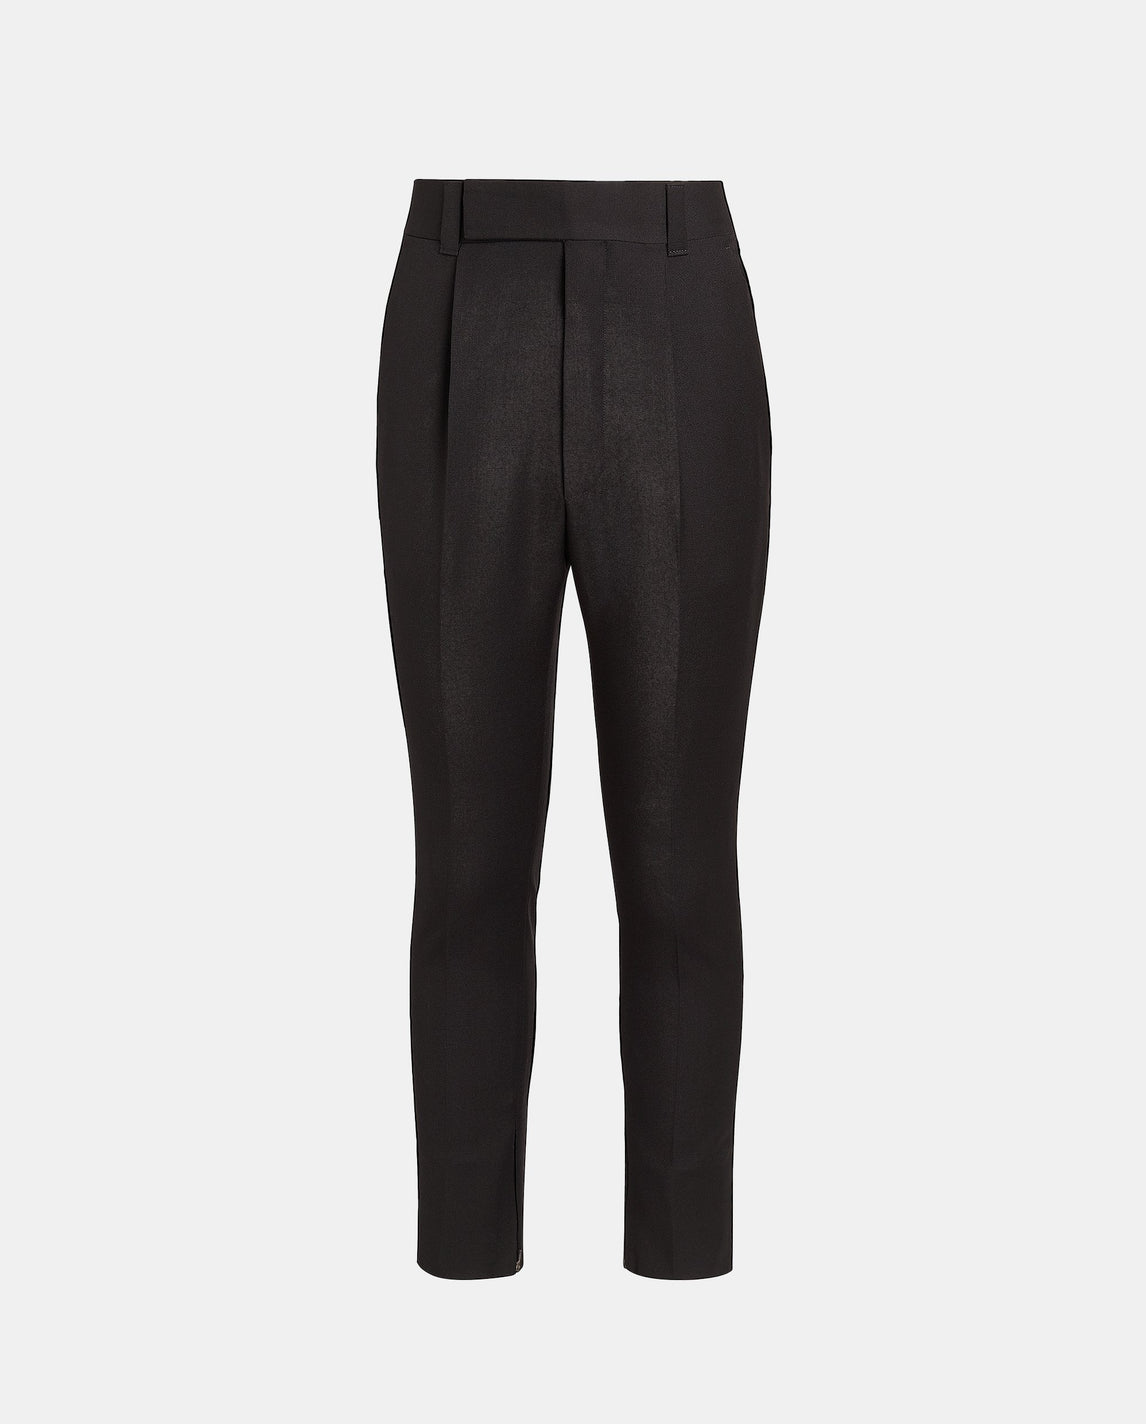 Slim Trouser - Black MENS FEAR OF GOD X ZEGNA